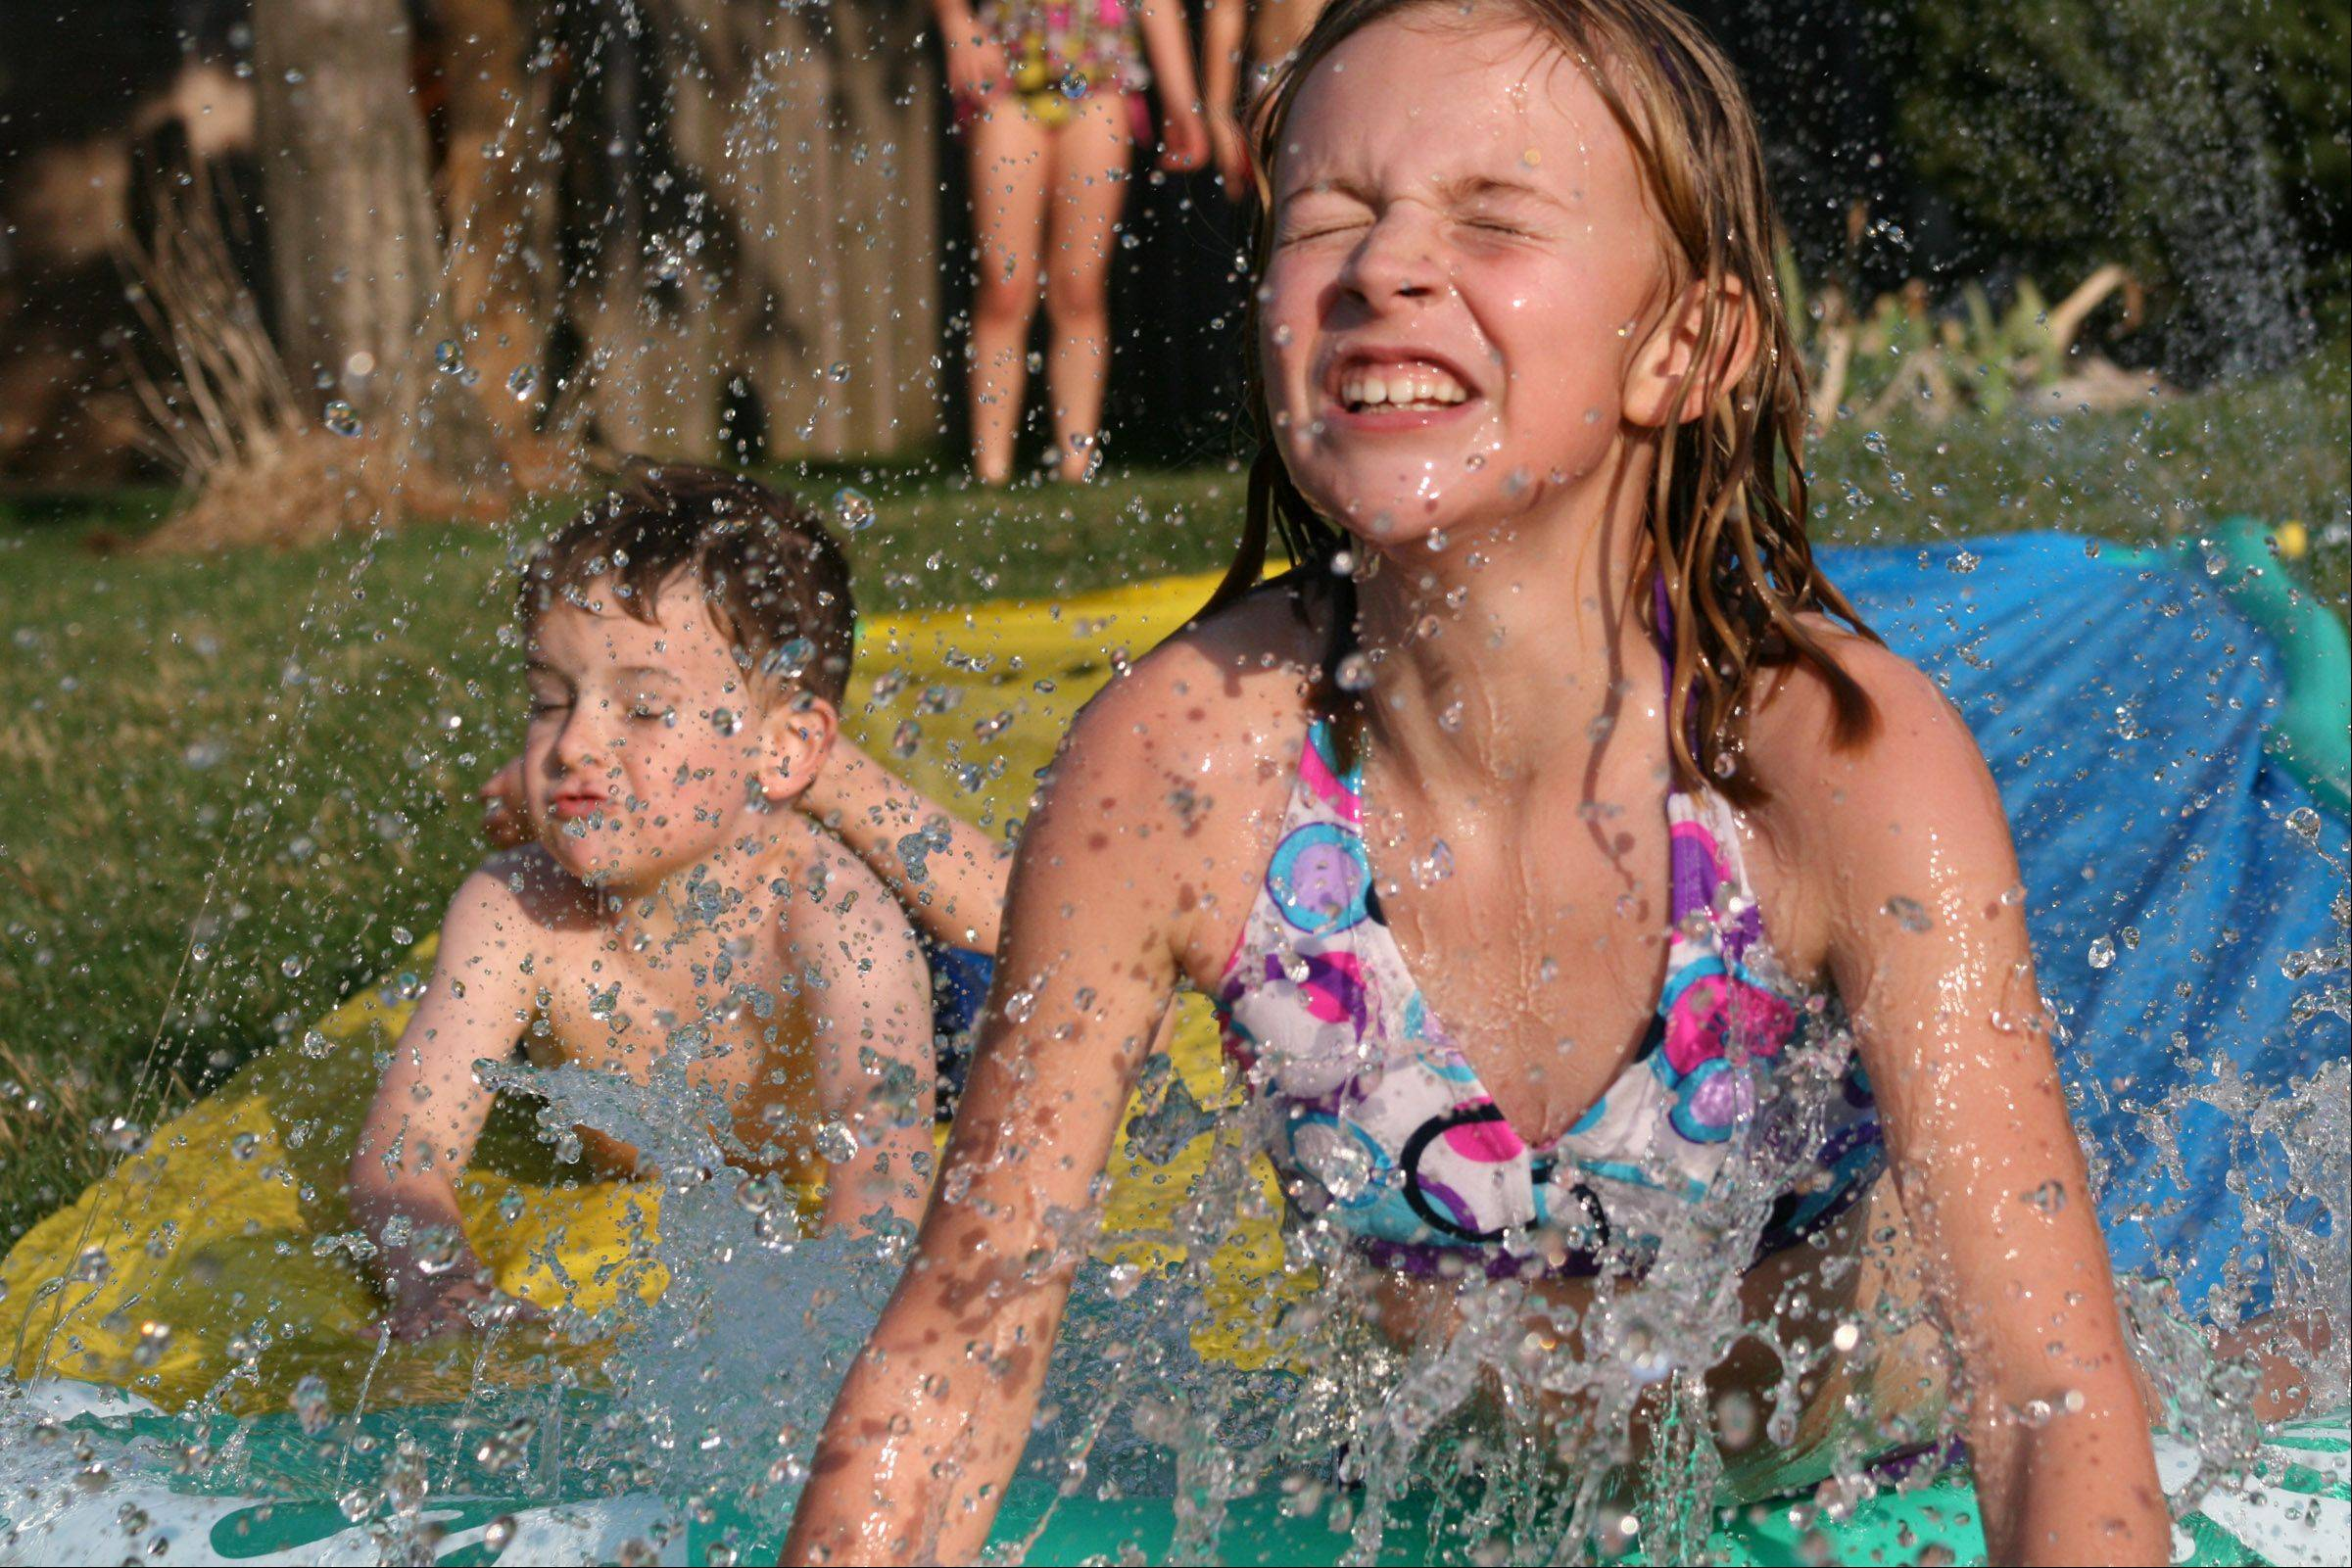 With all the warm weather we've been having, the neighborhood kids got their slip and slide out. They all have such fun on March 18, 20012 in Cary in their bathing suits! Who would of thought!